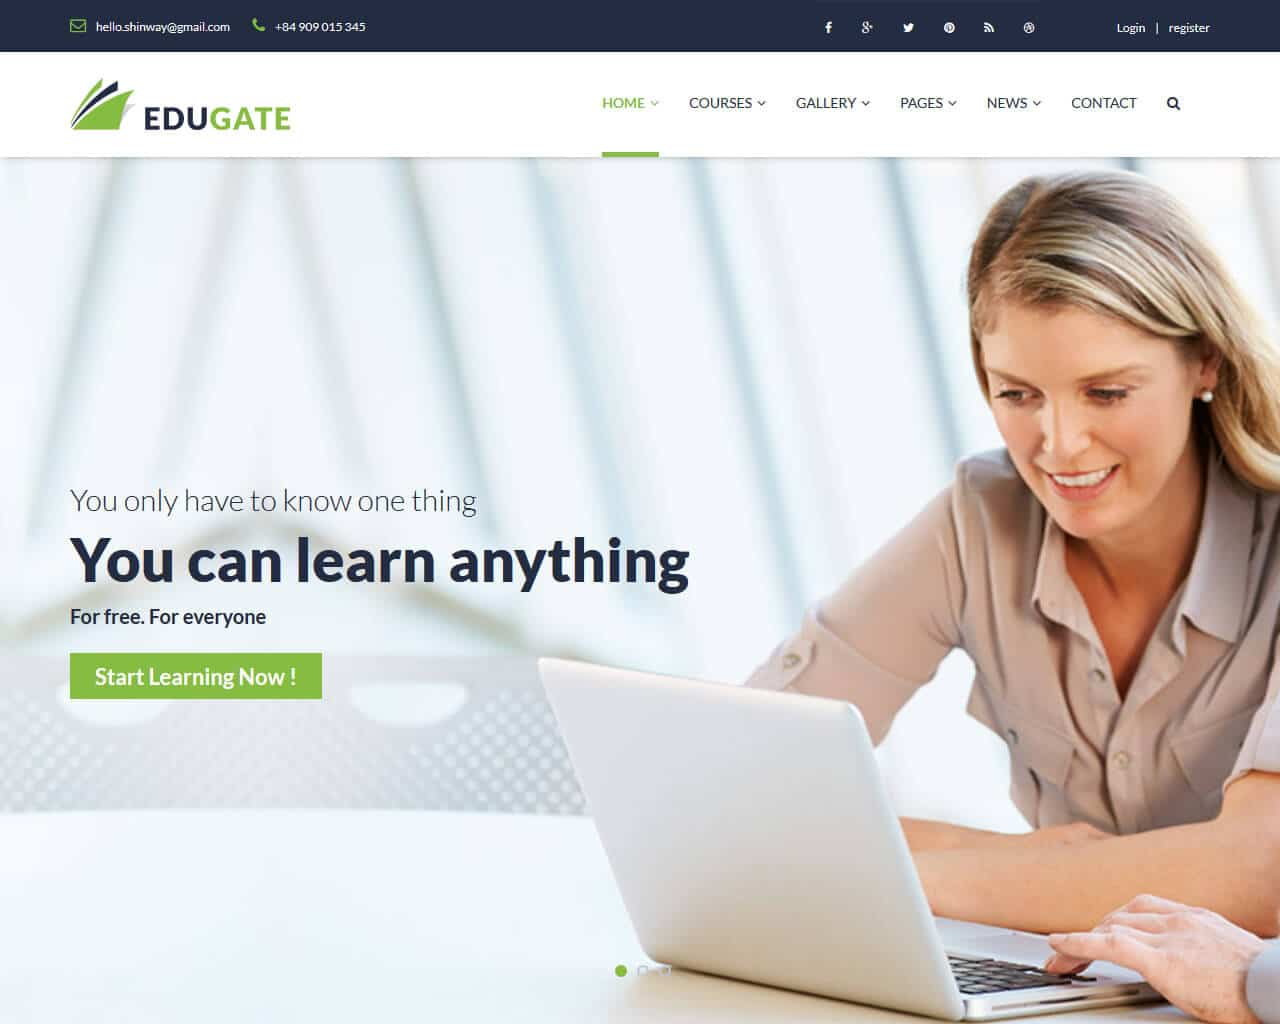 EduGate Website Template